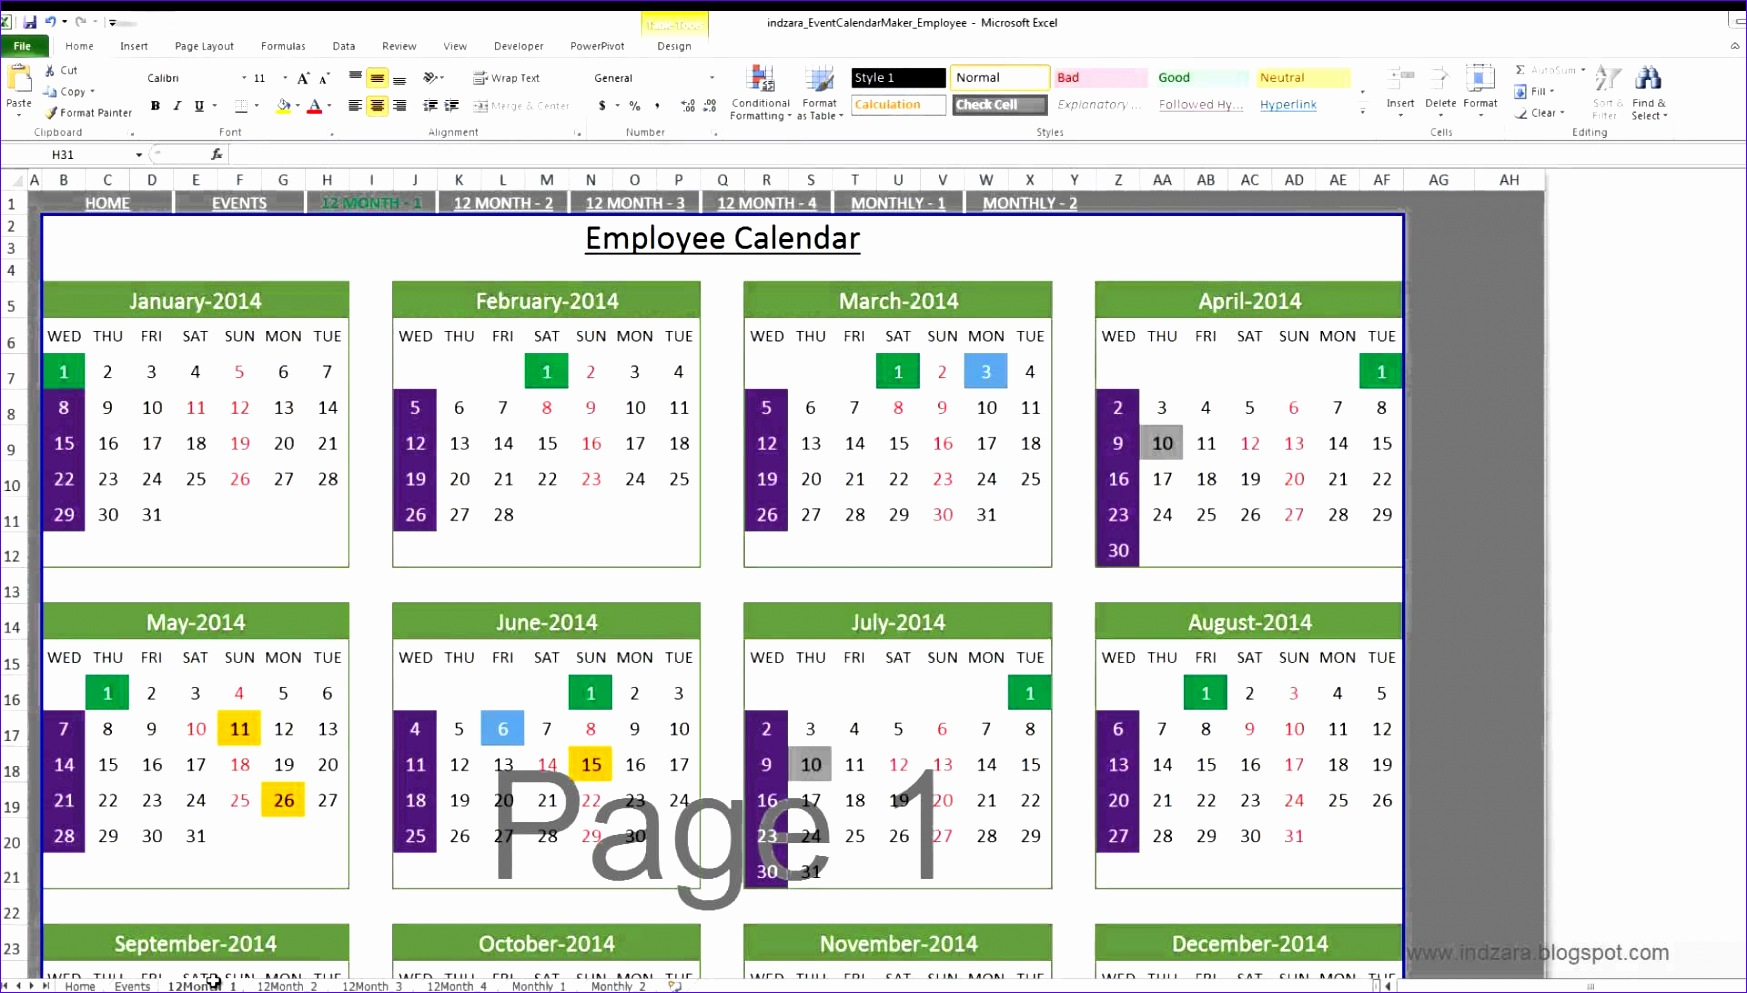 Dynamic Dashboard Template In Excel Vlkhp Elegant event Calendar Maker Excel Template